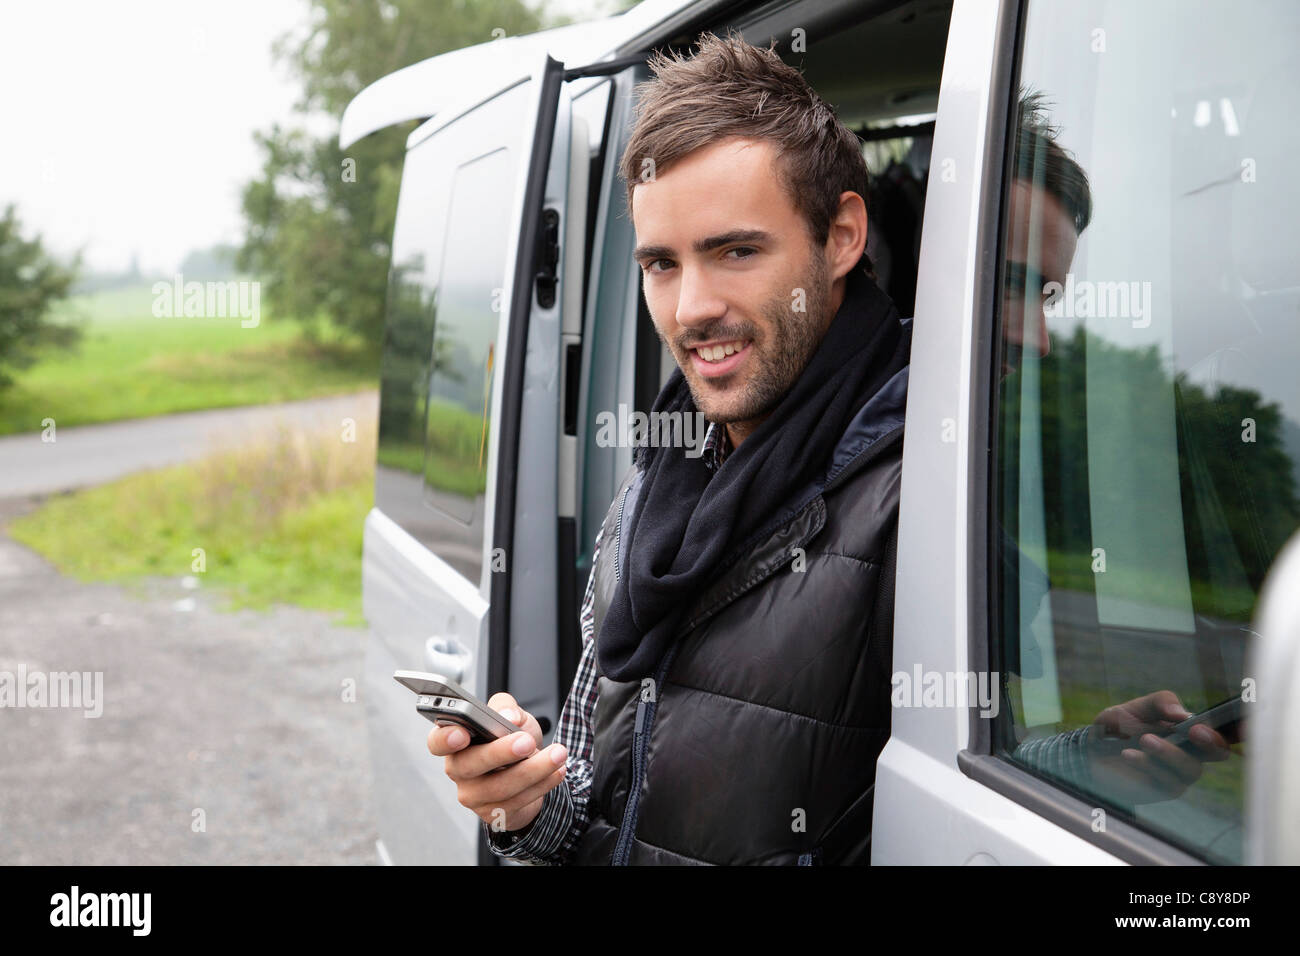 portrait of young man looking out of car window writing text message on mobile phone - Stock Image